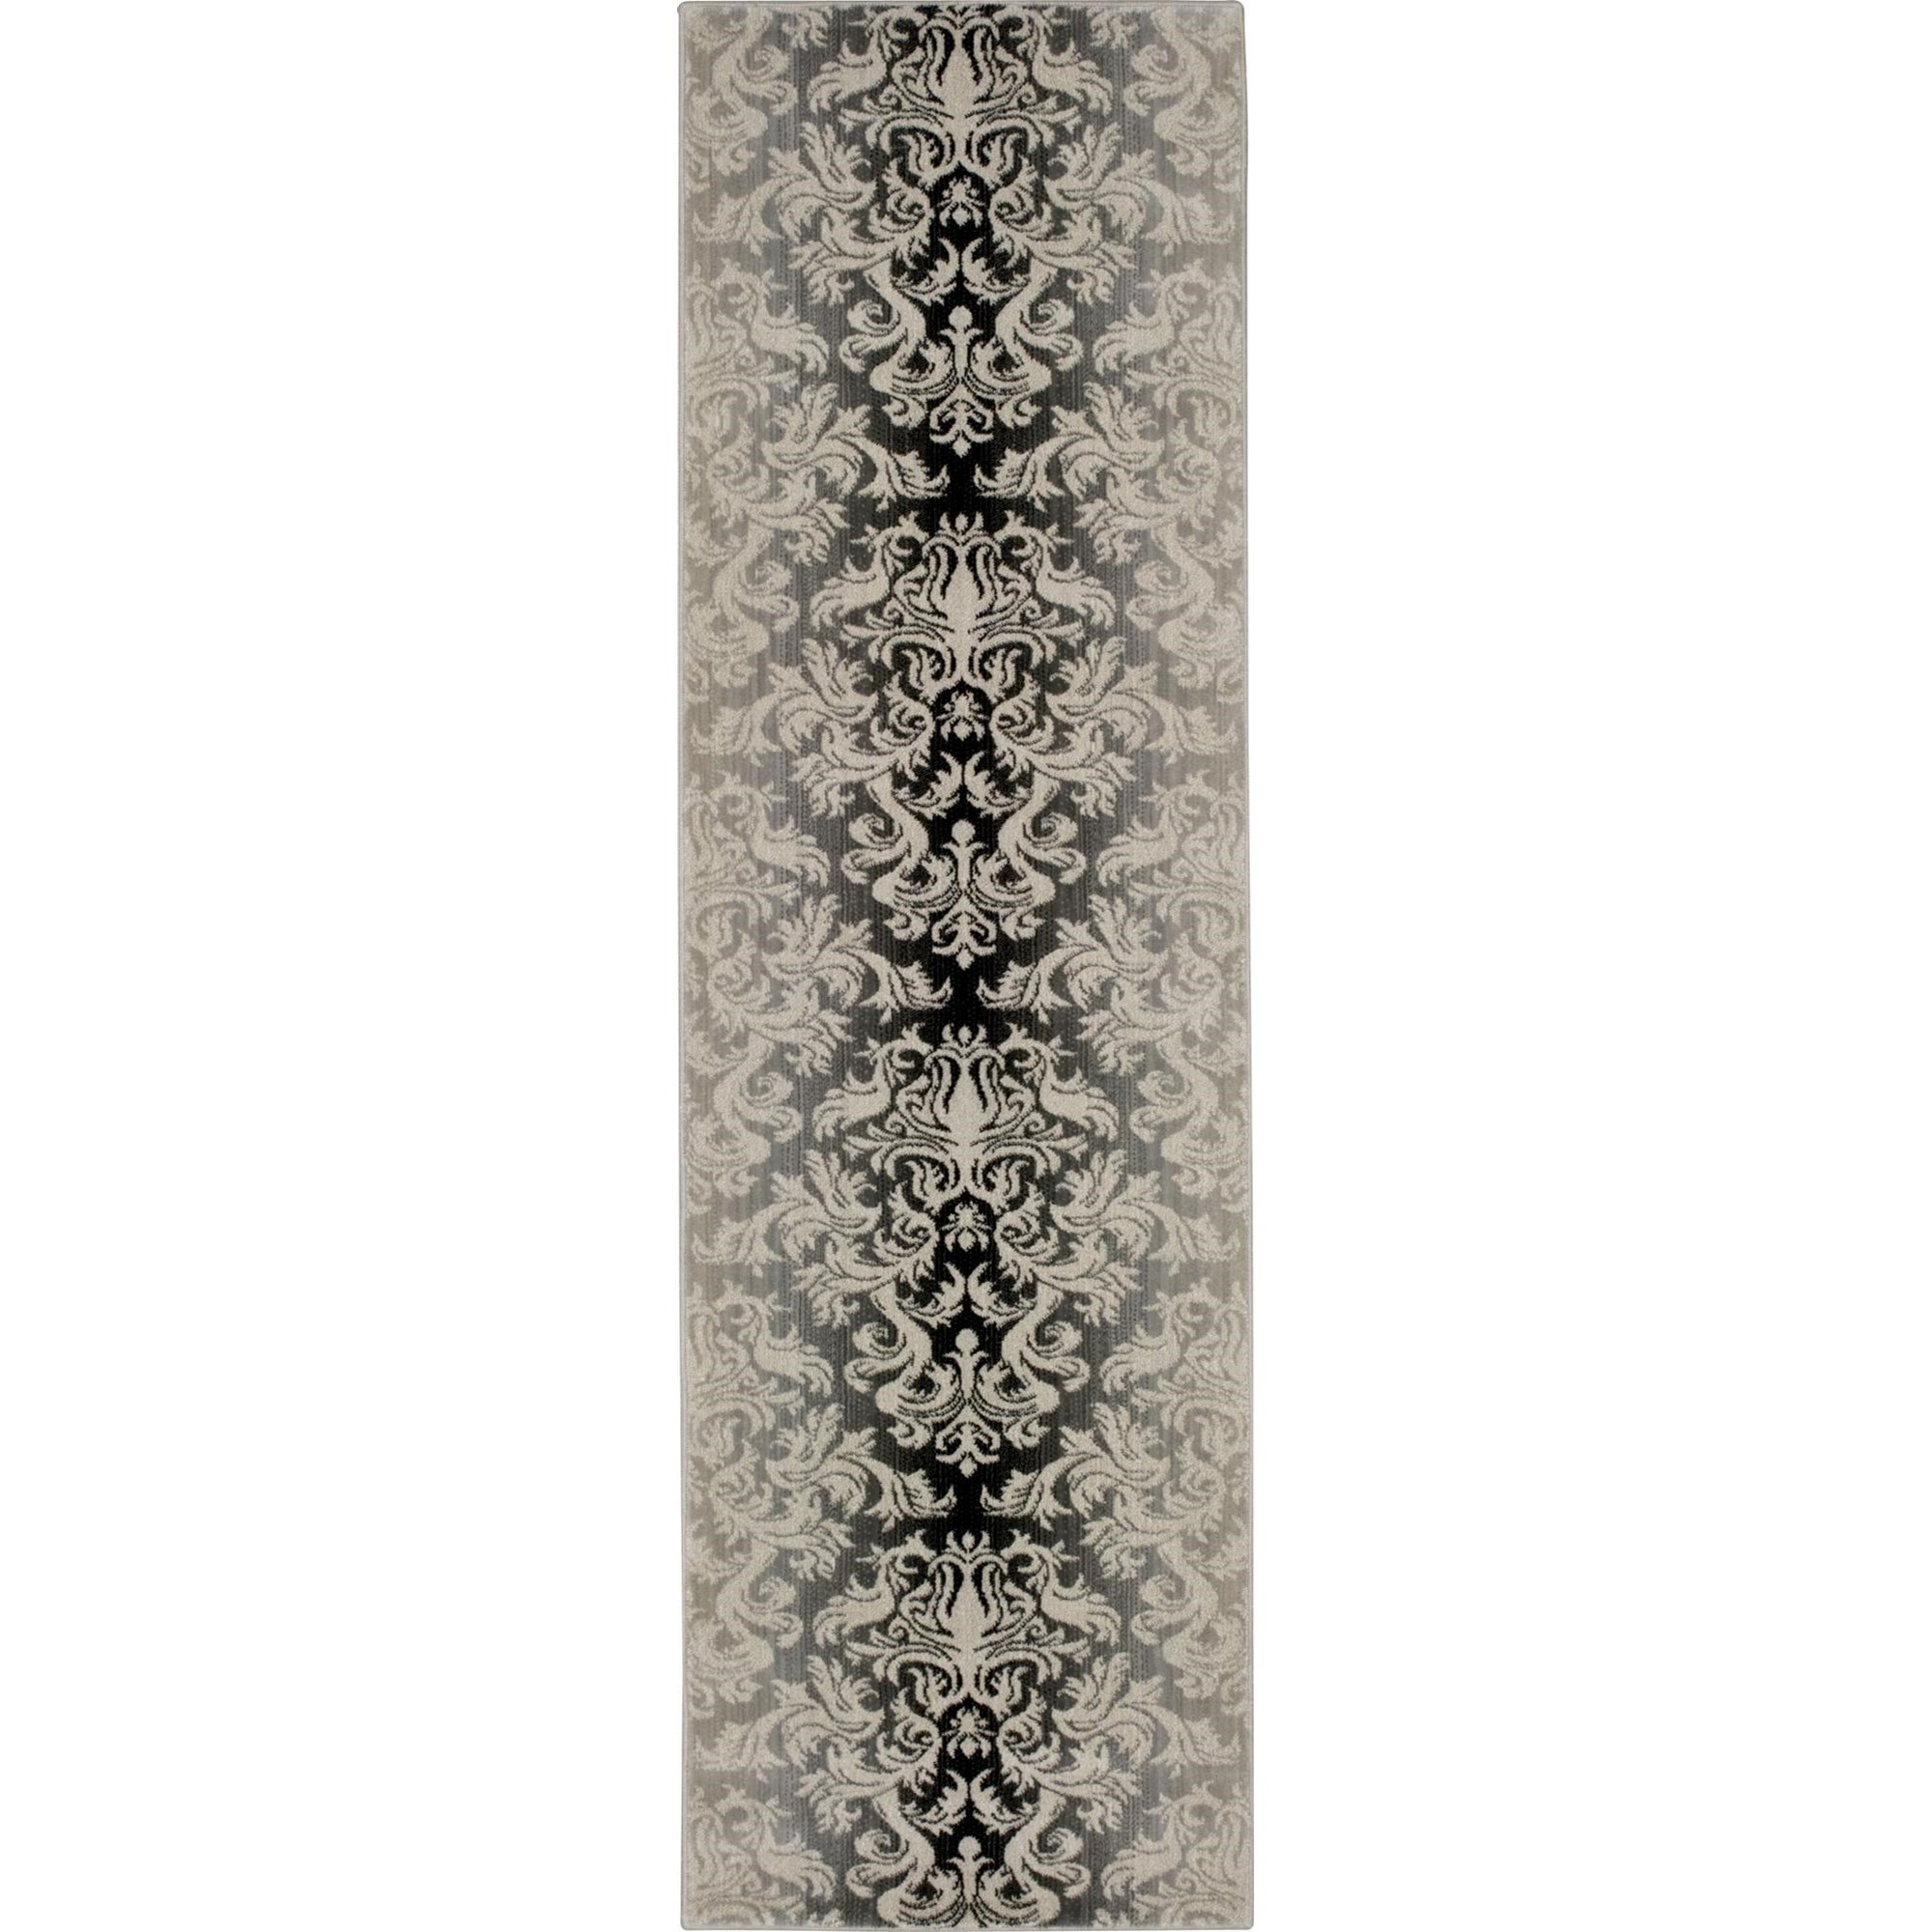 """Nourison Riviera 2'3"""" x 8' Charcoal Area Rug - Item Number: 27157"""